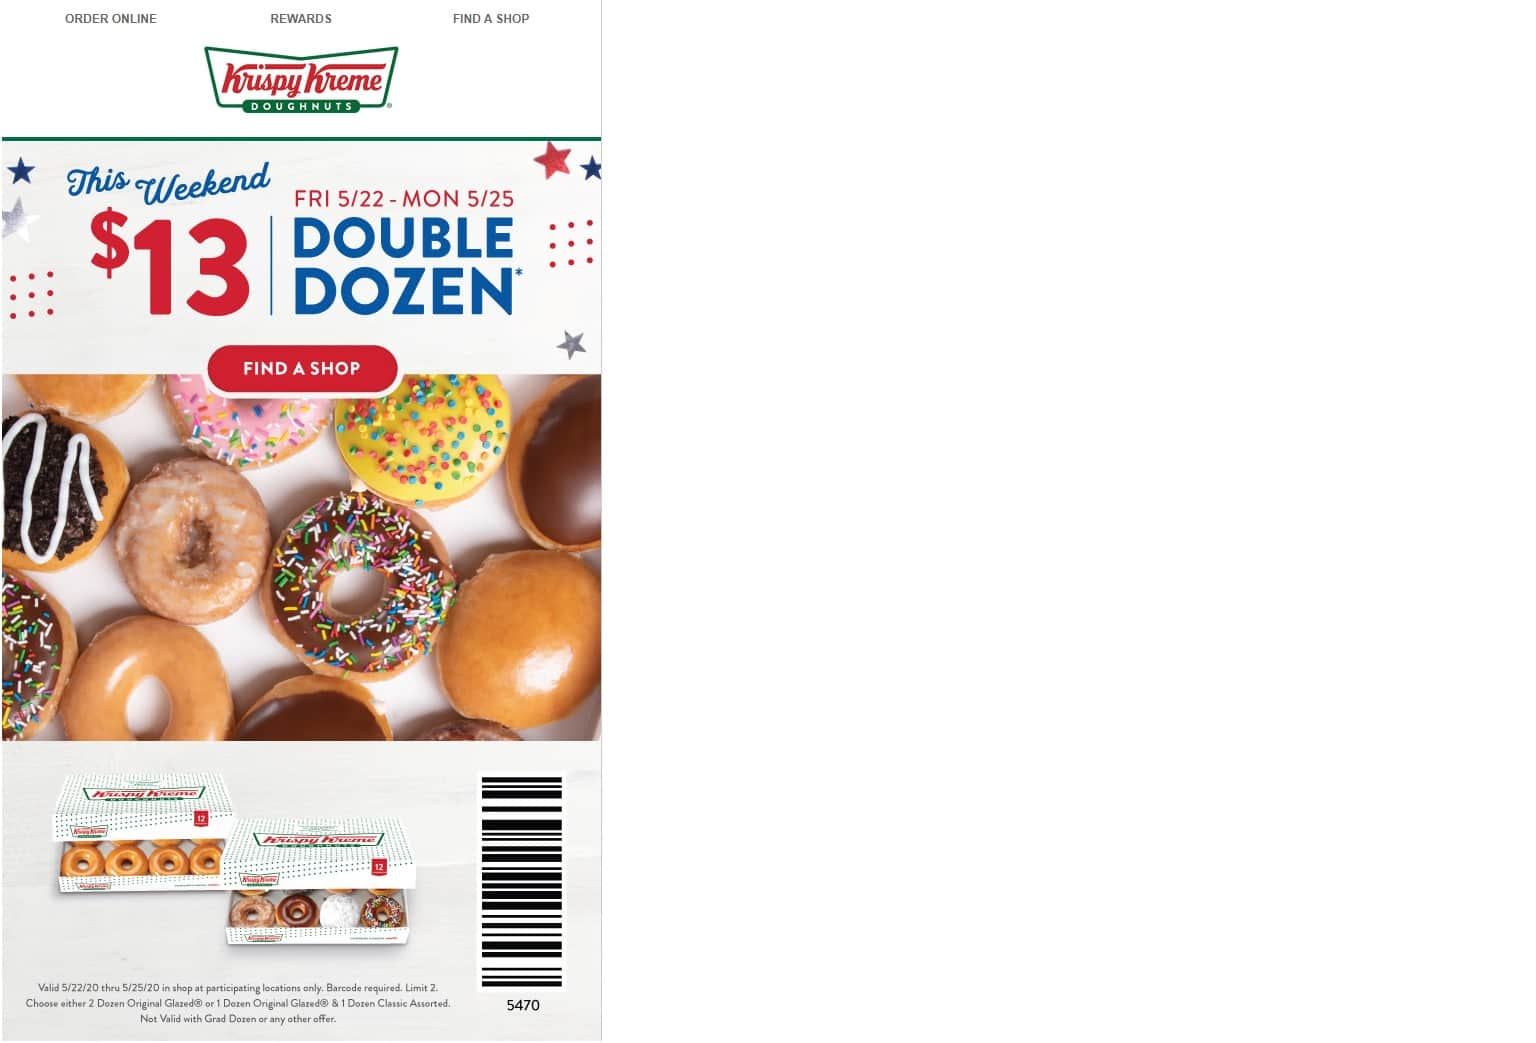 Krispy Kreme $13 Double dozen this weekend. 5/22-5/25